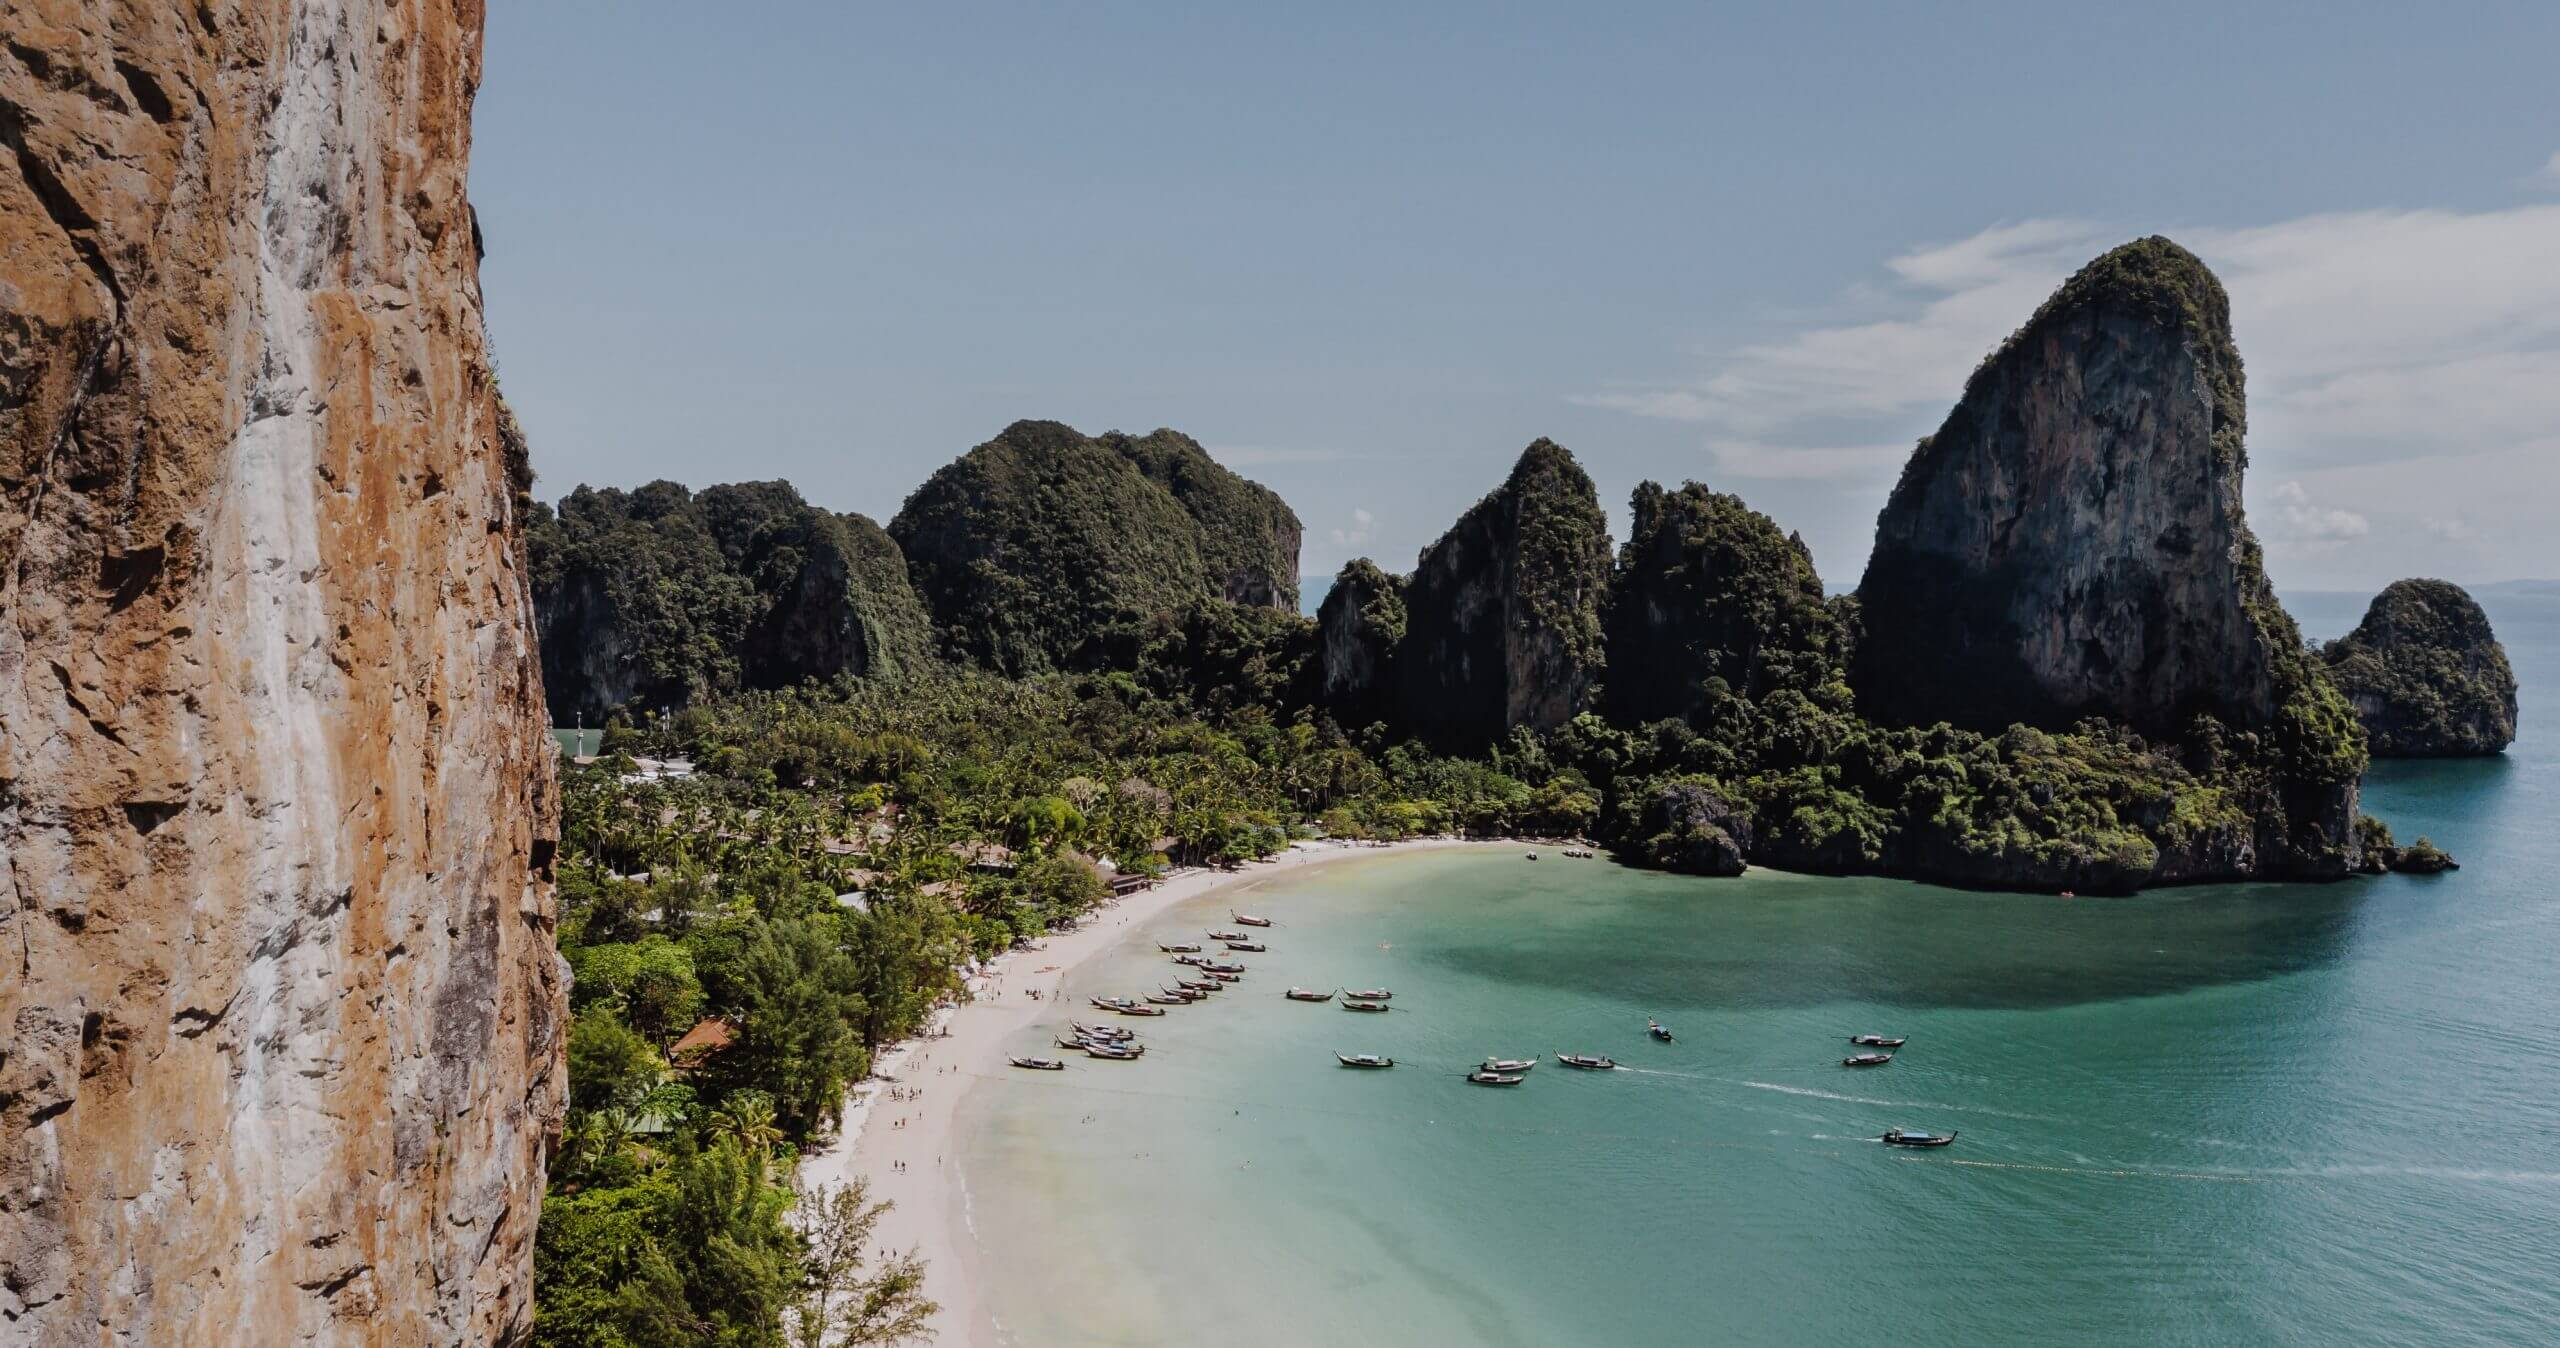 Railay beach from above with beautiful blue water and longtail boats in the water